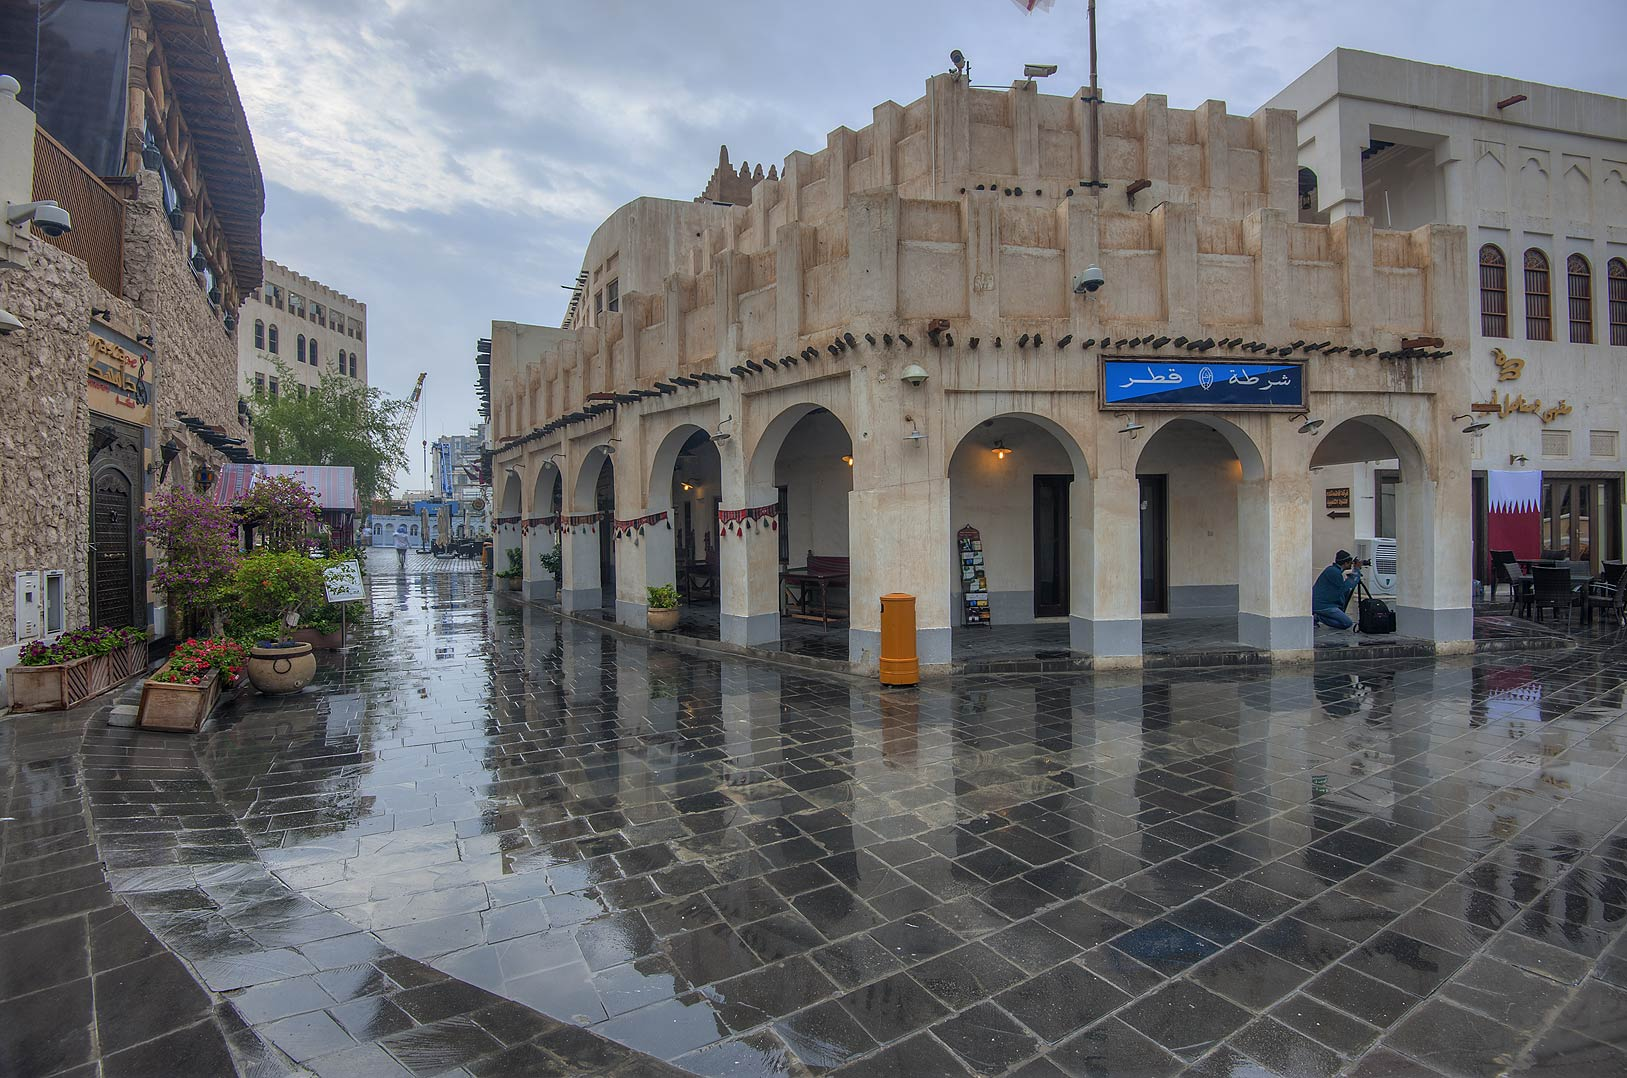 Arched gallery in Souq Waqif market at rain. Doha, Qatar